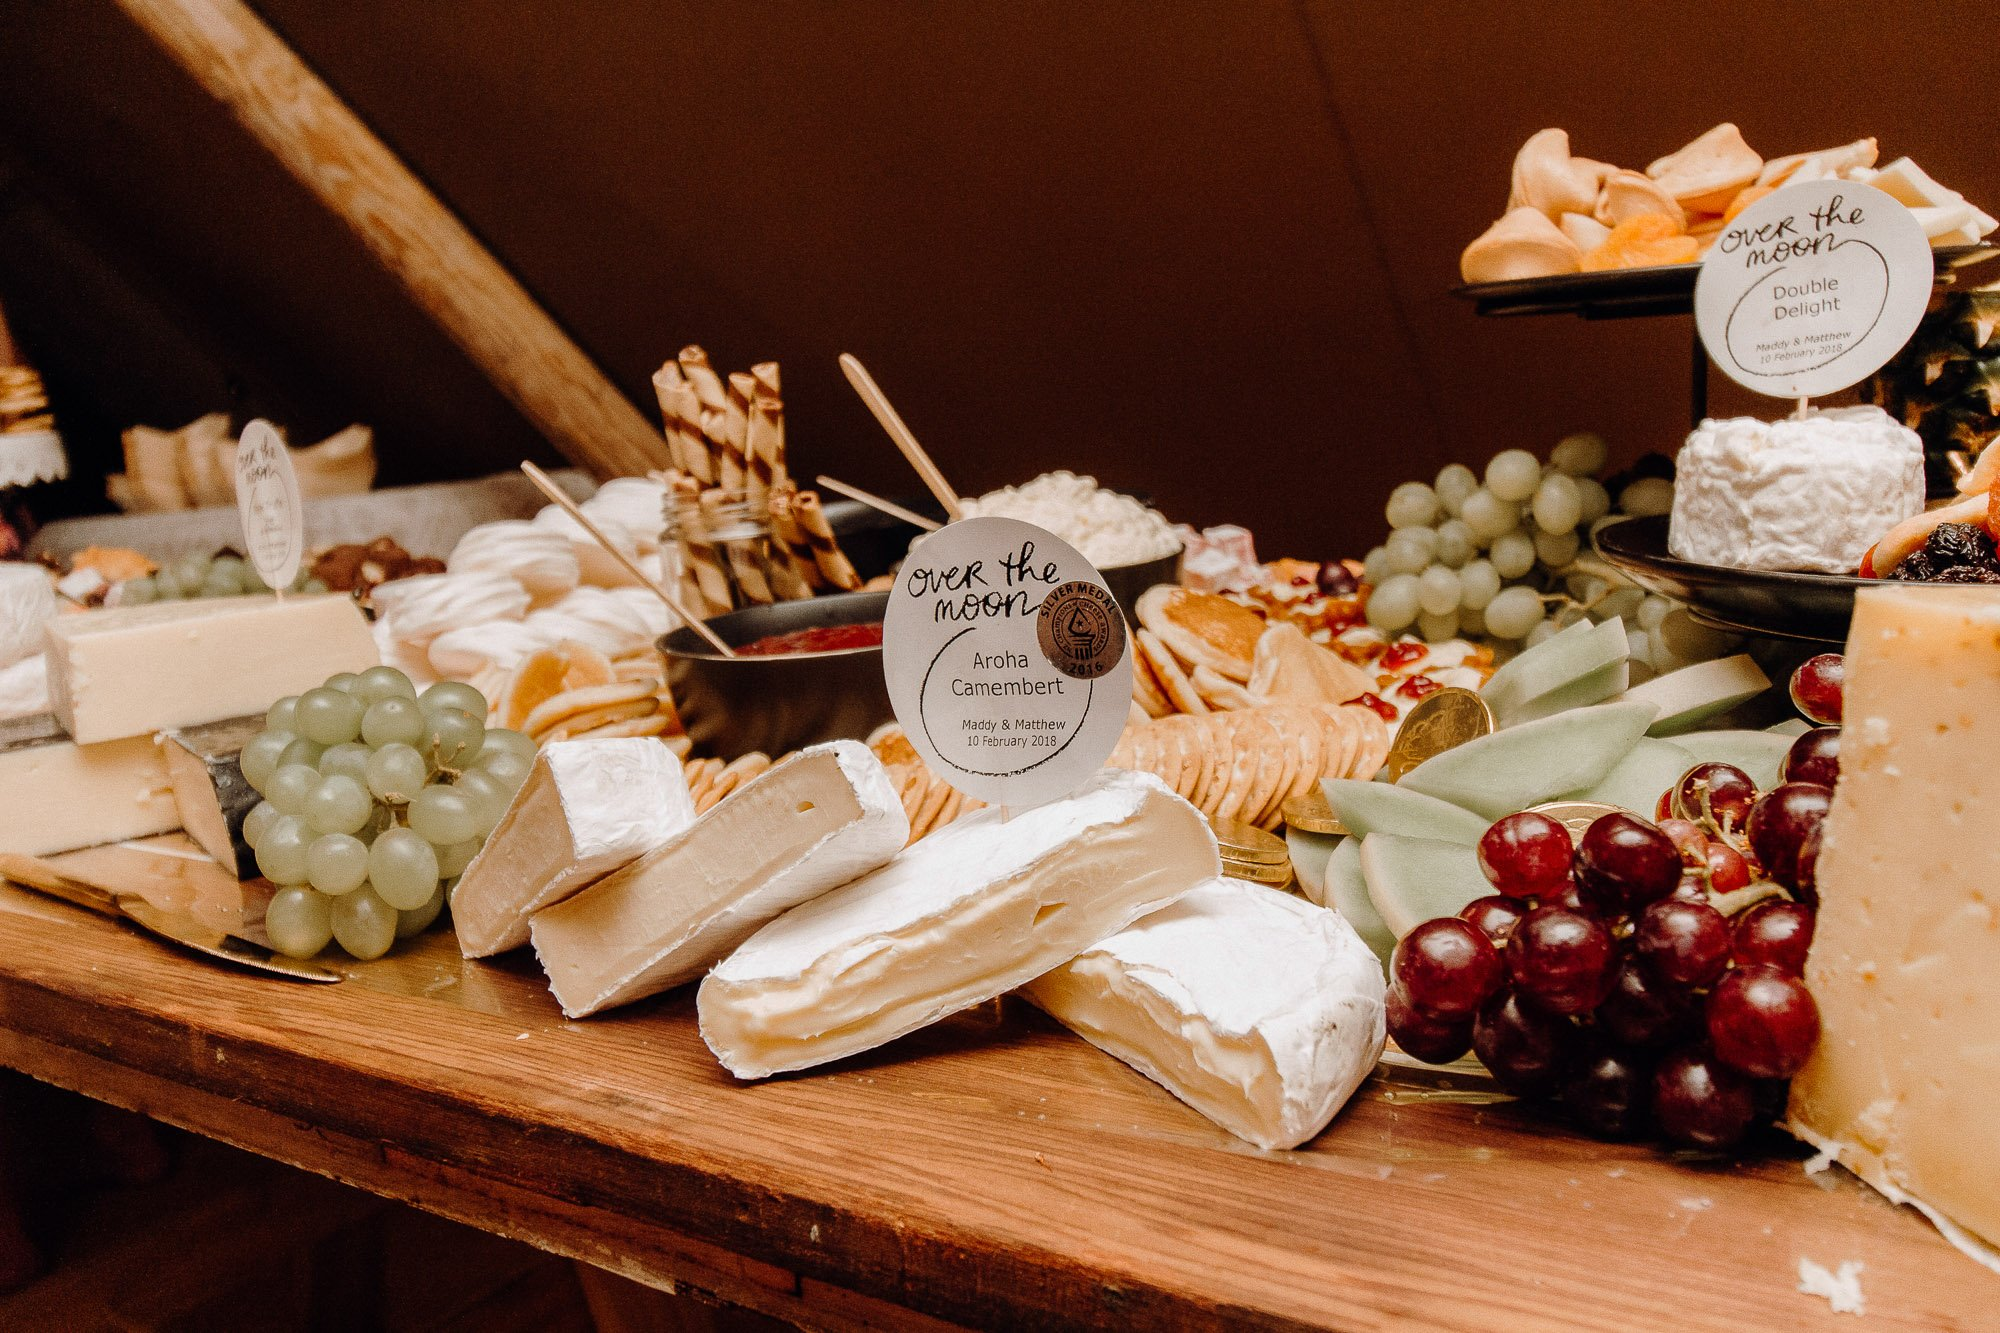 Wedding Photography Of Grazing Table Ideas 003, filled with cheese, crackers, fresh fruits and more cheese